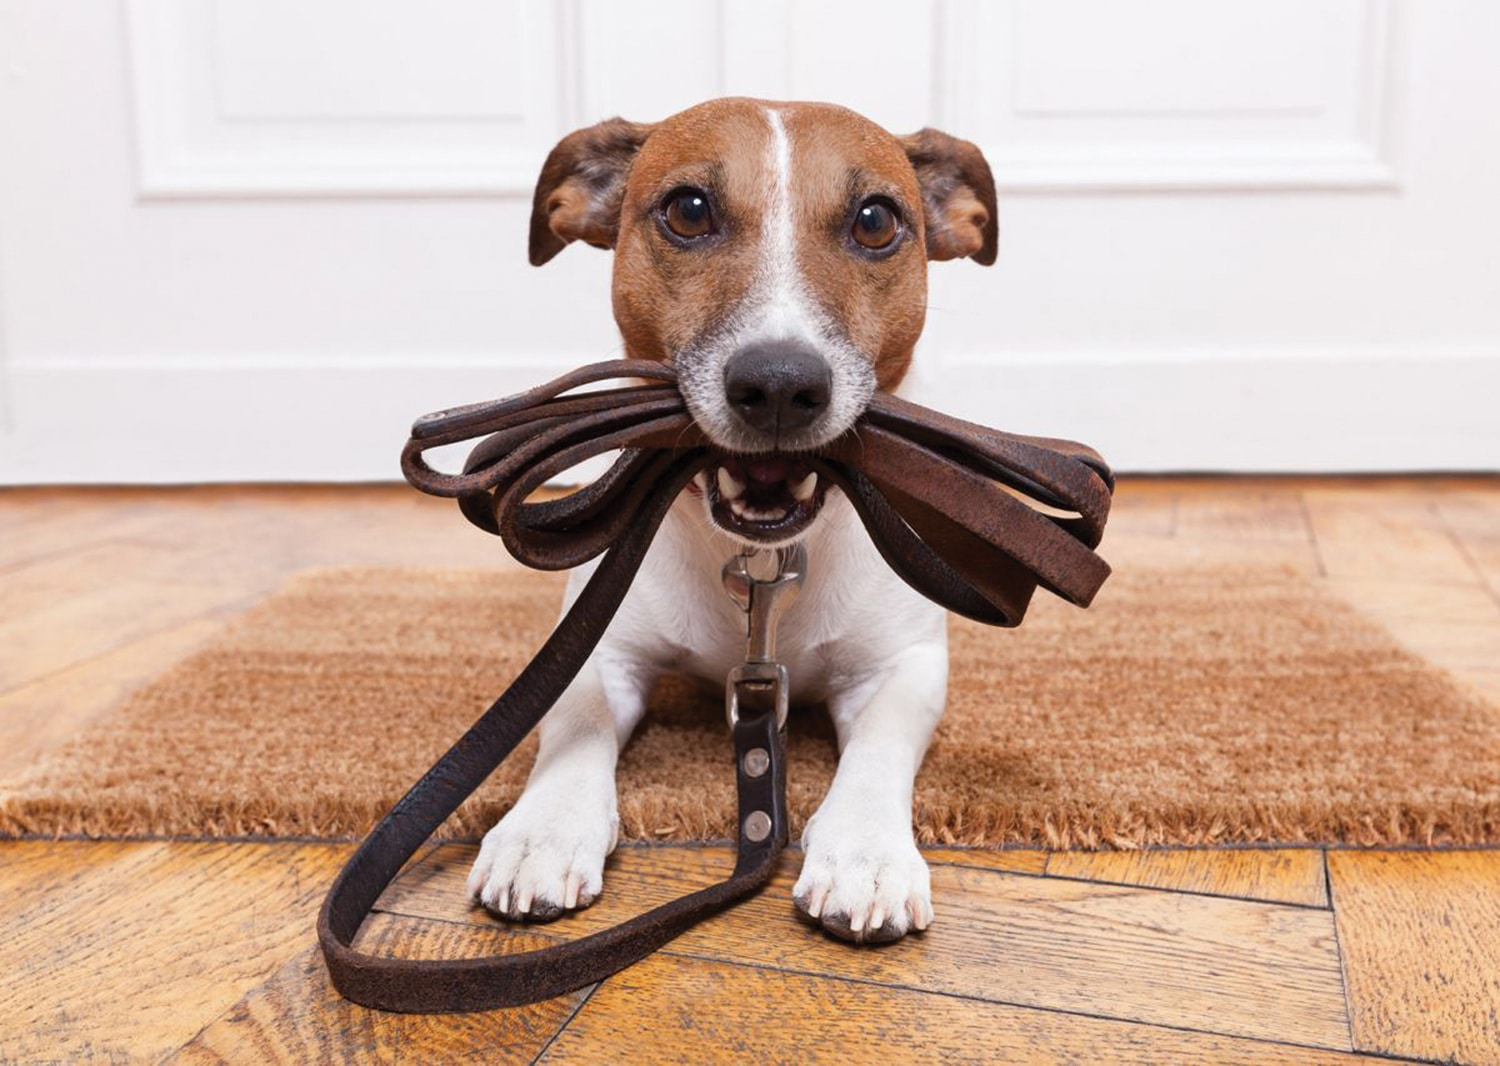 Safe walkies: Keeping adventurous dogs safe when out on walks